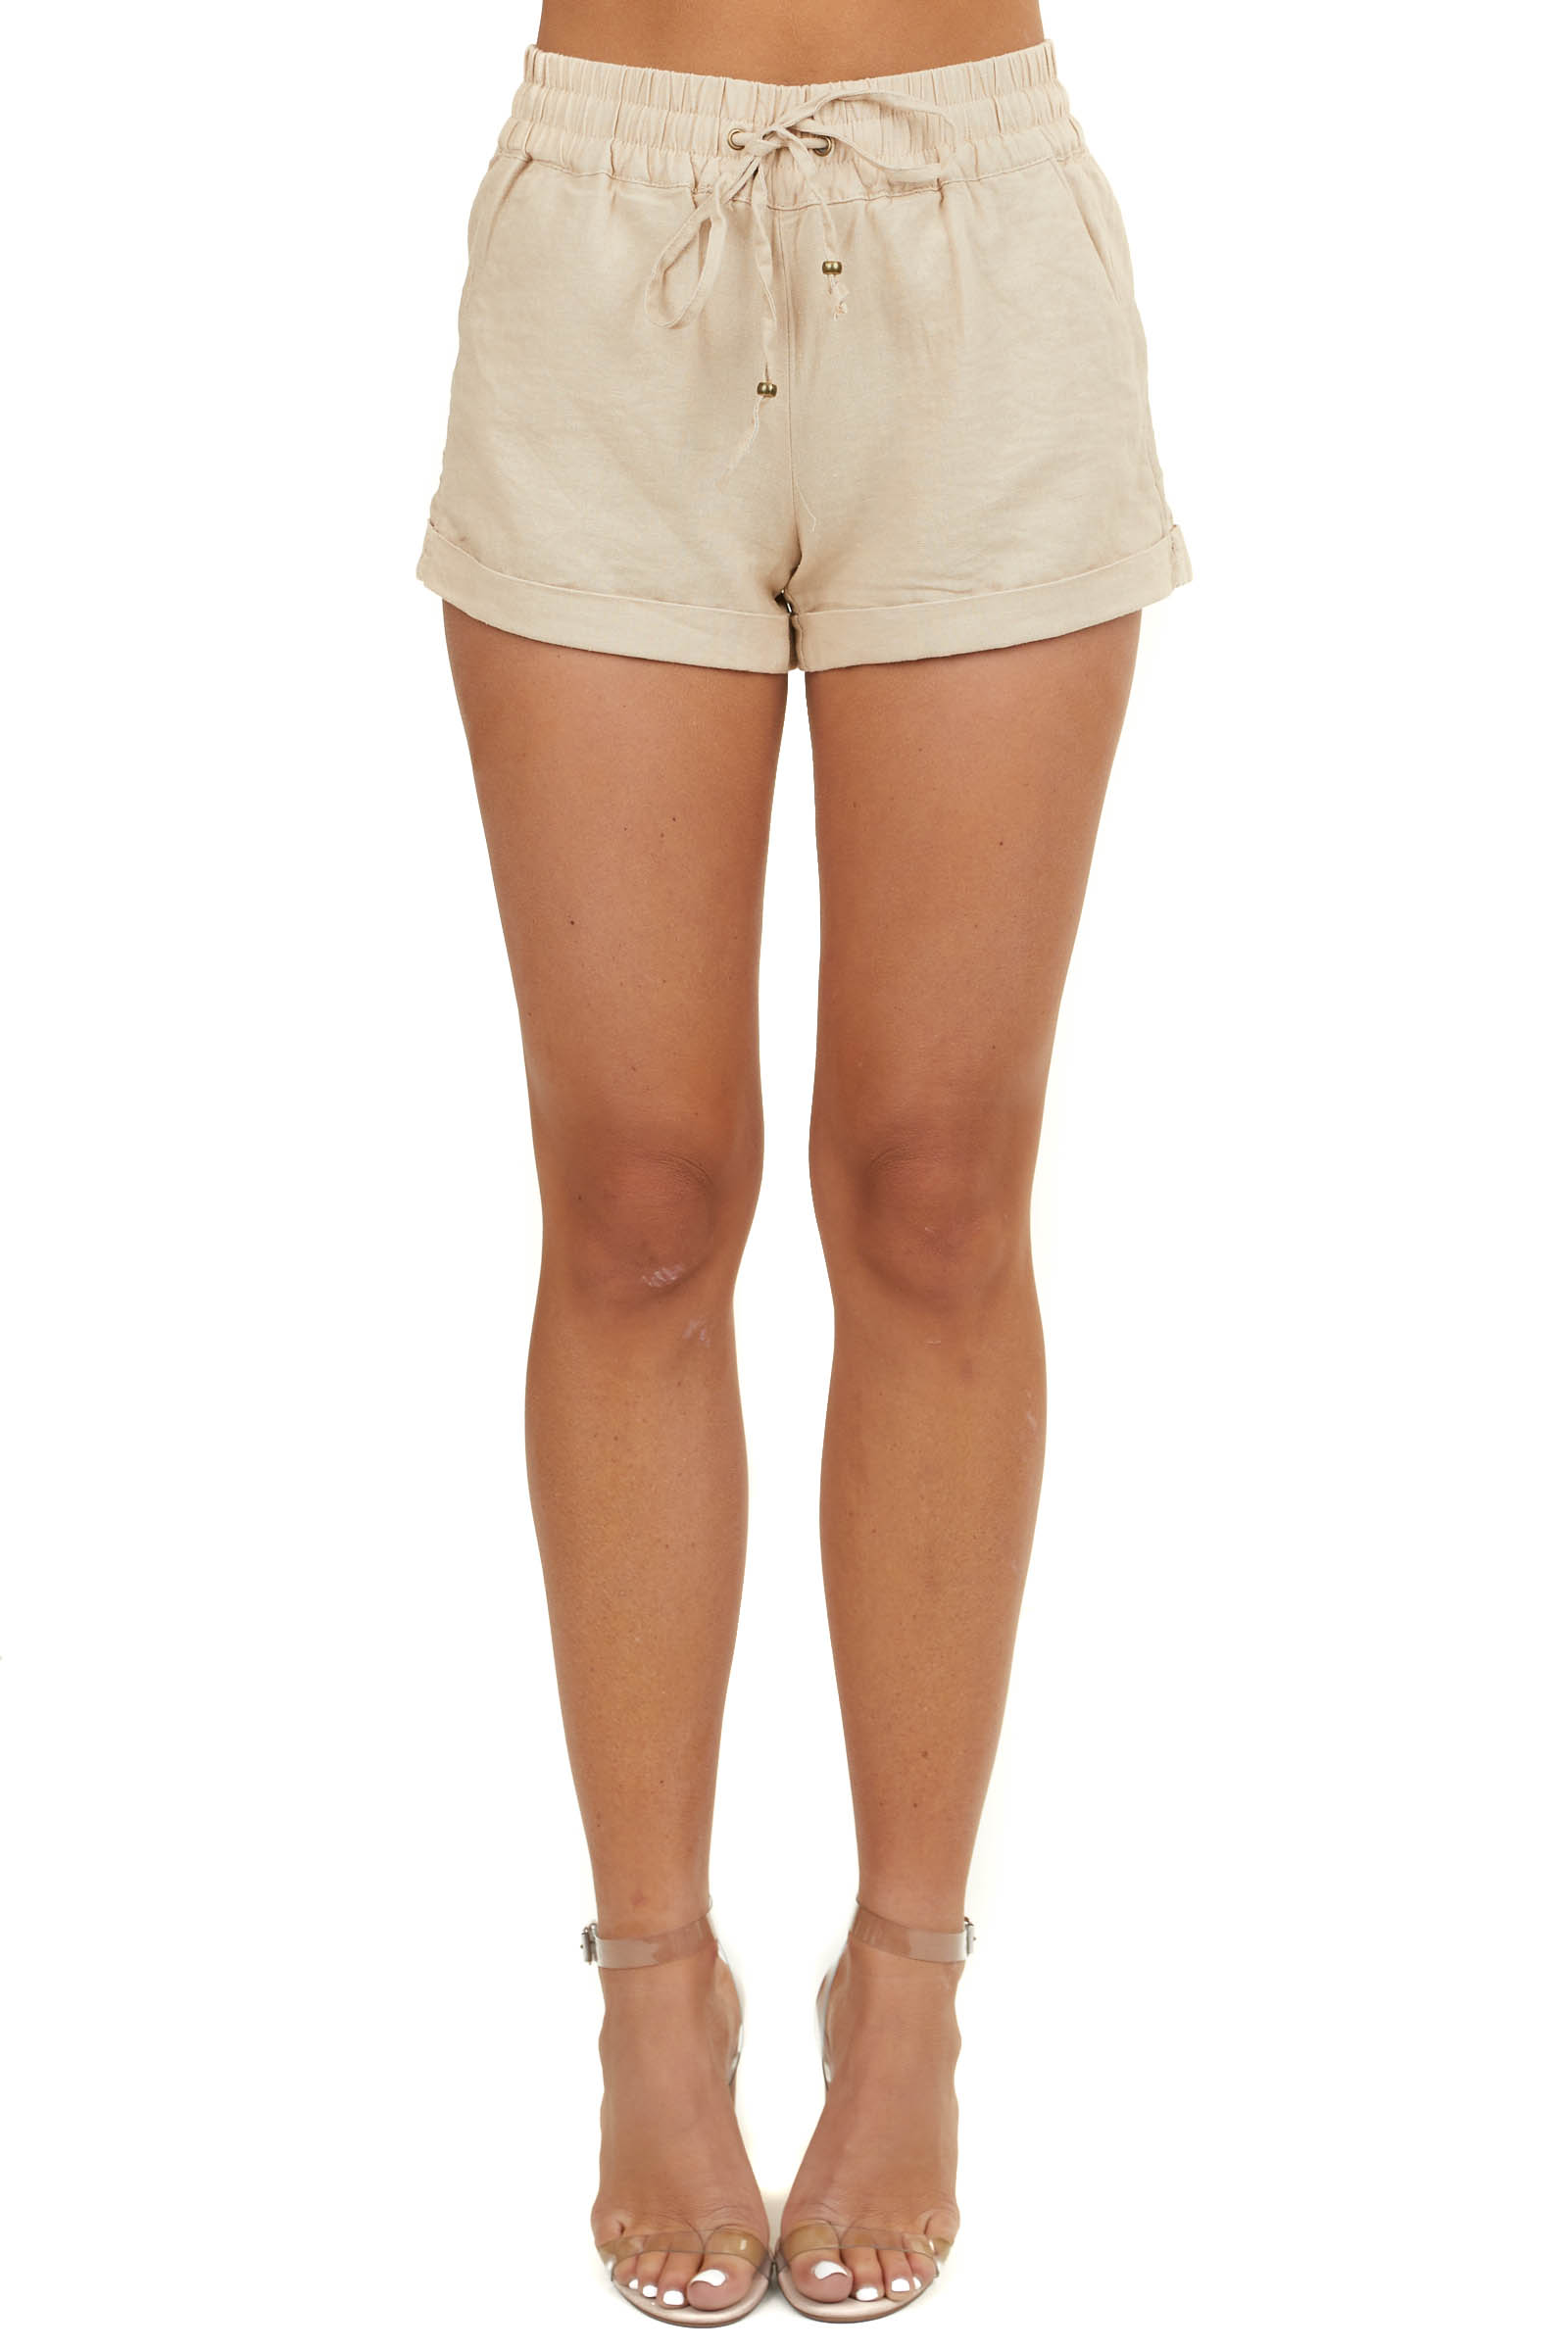 Beige Mid Rise Smocked Shorts with Pockets and Drawstring